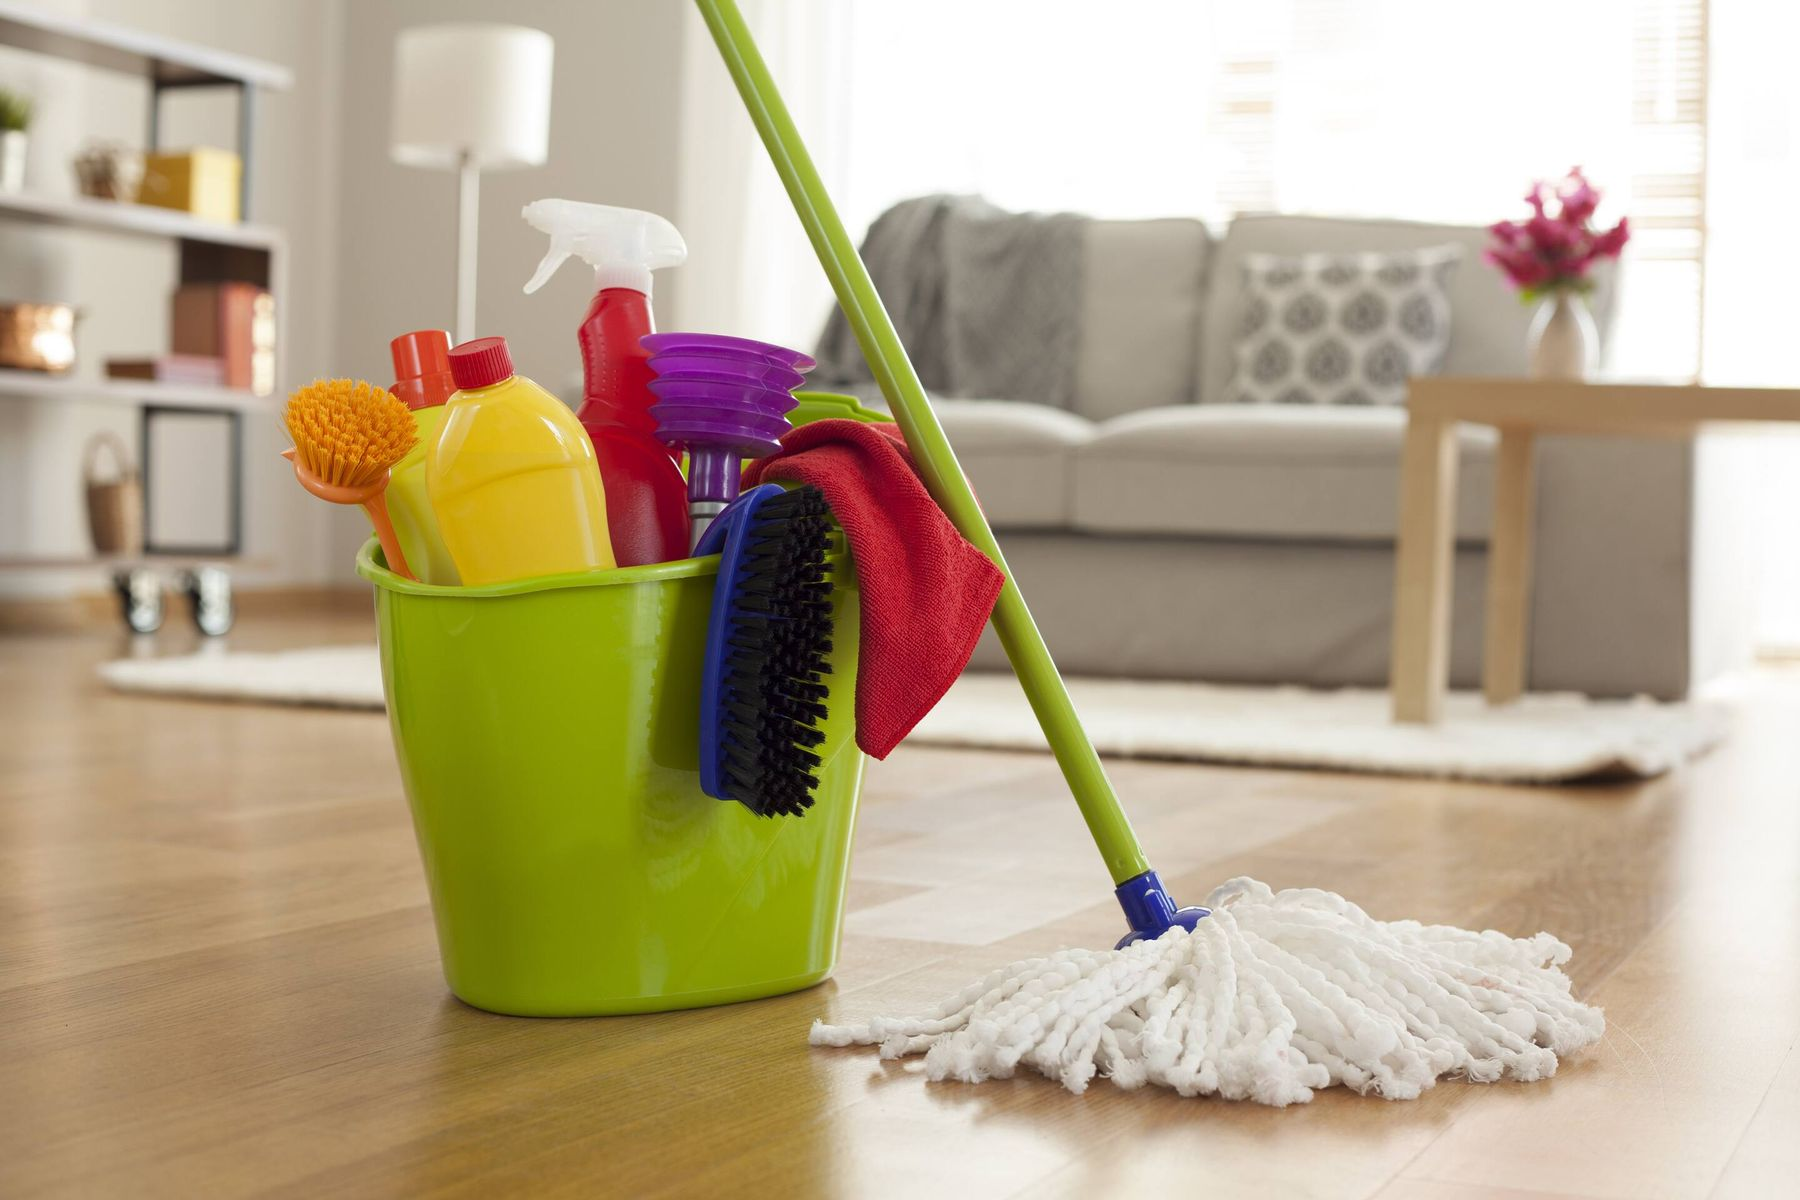 Working from Home? Here's How to Make House-Cleaning Schedule and Checklist